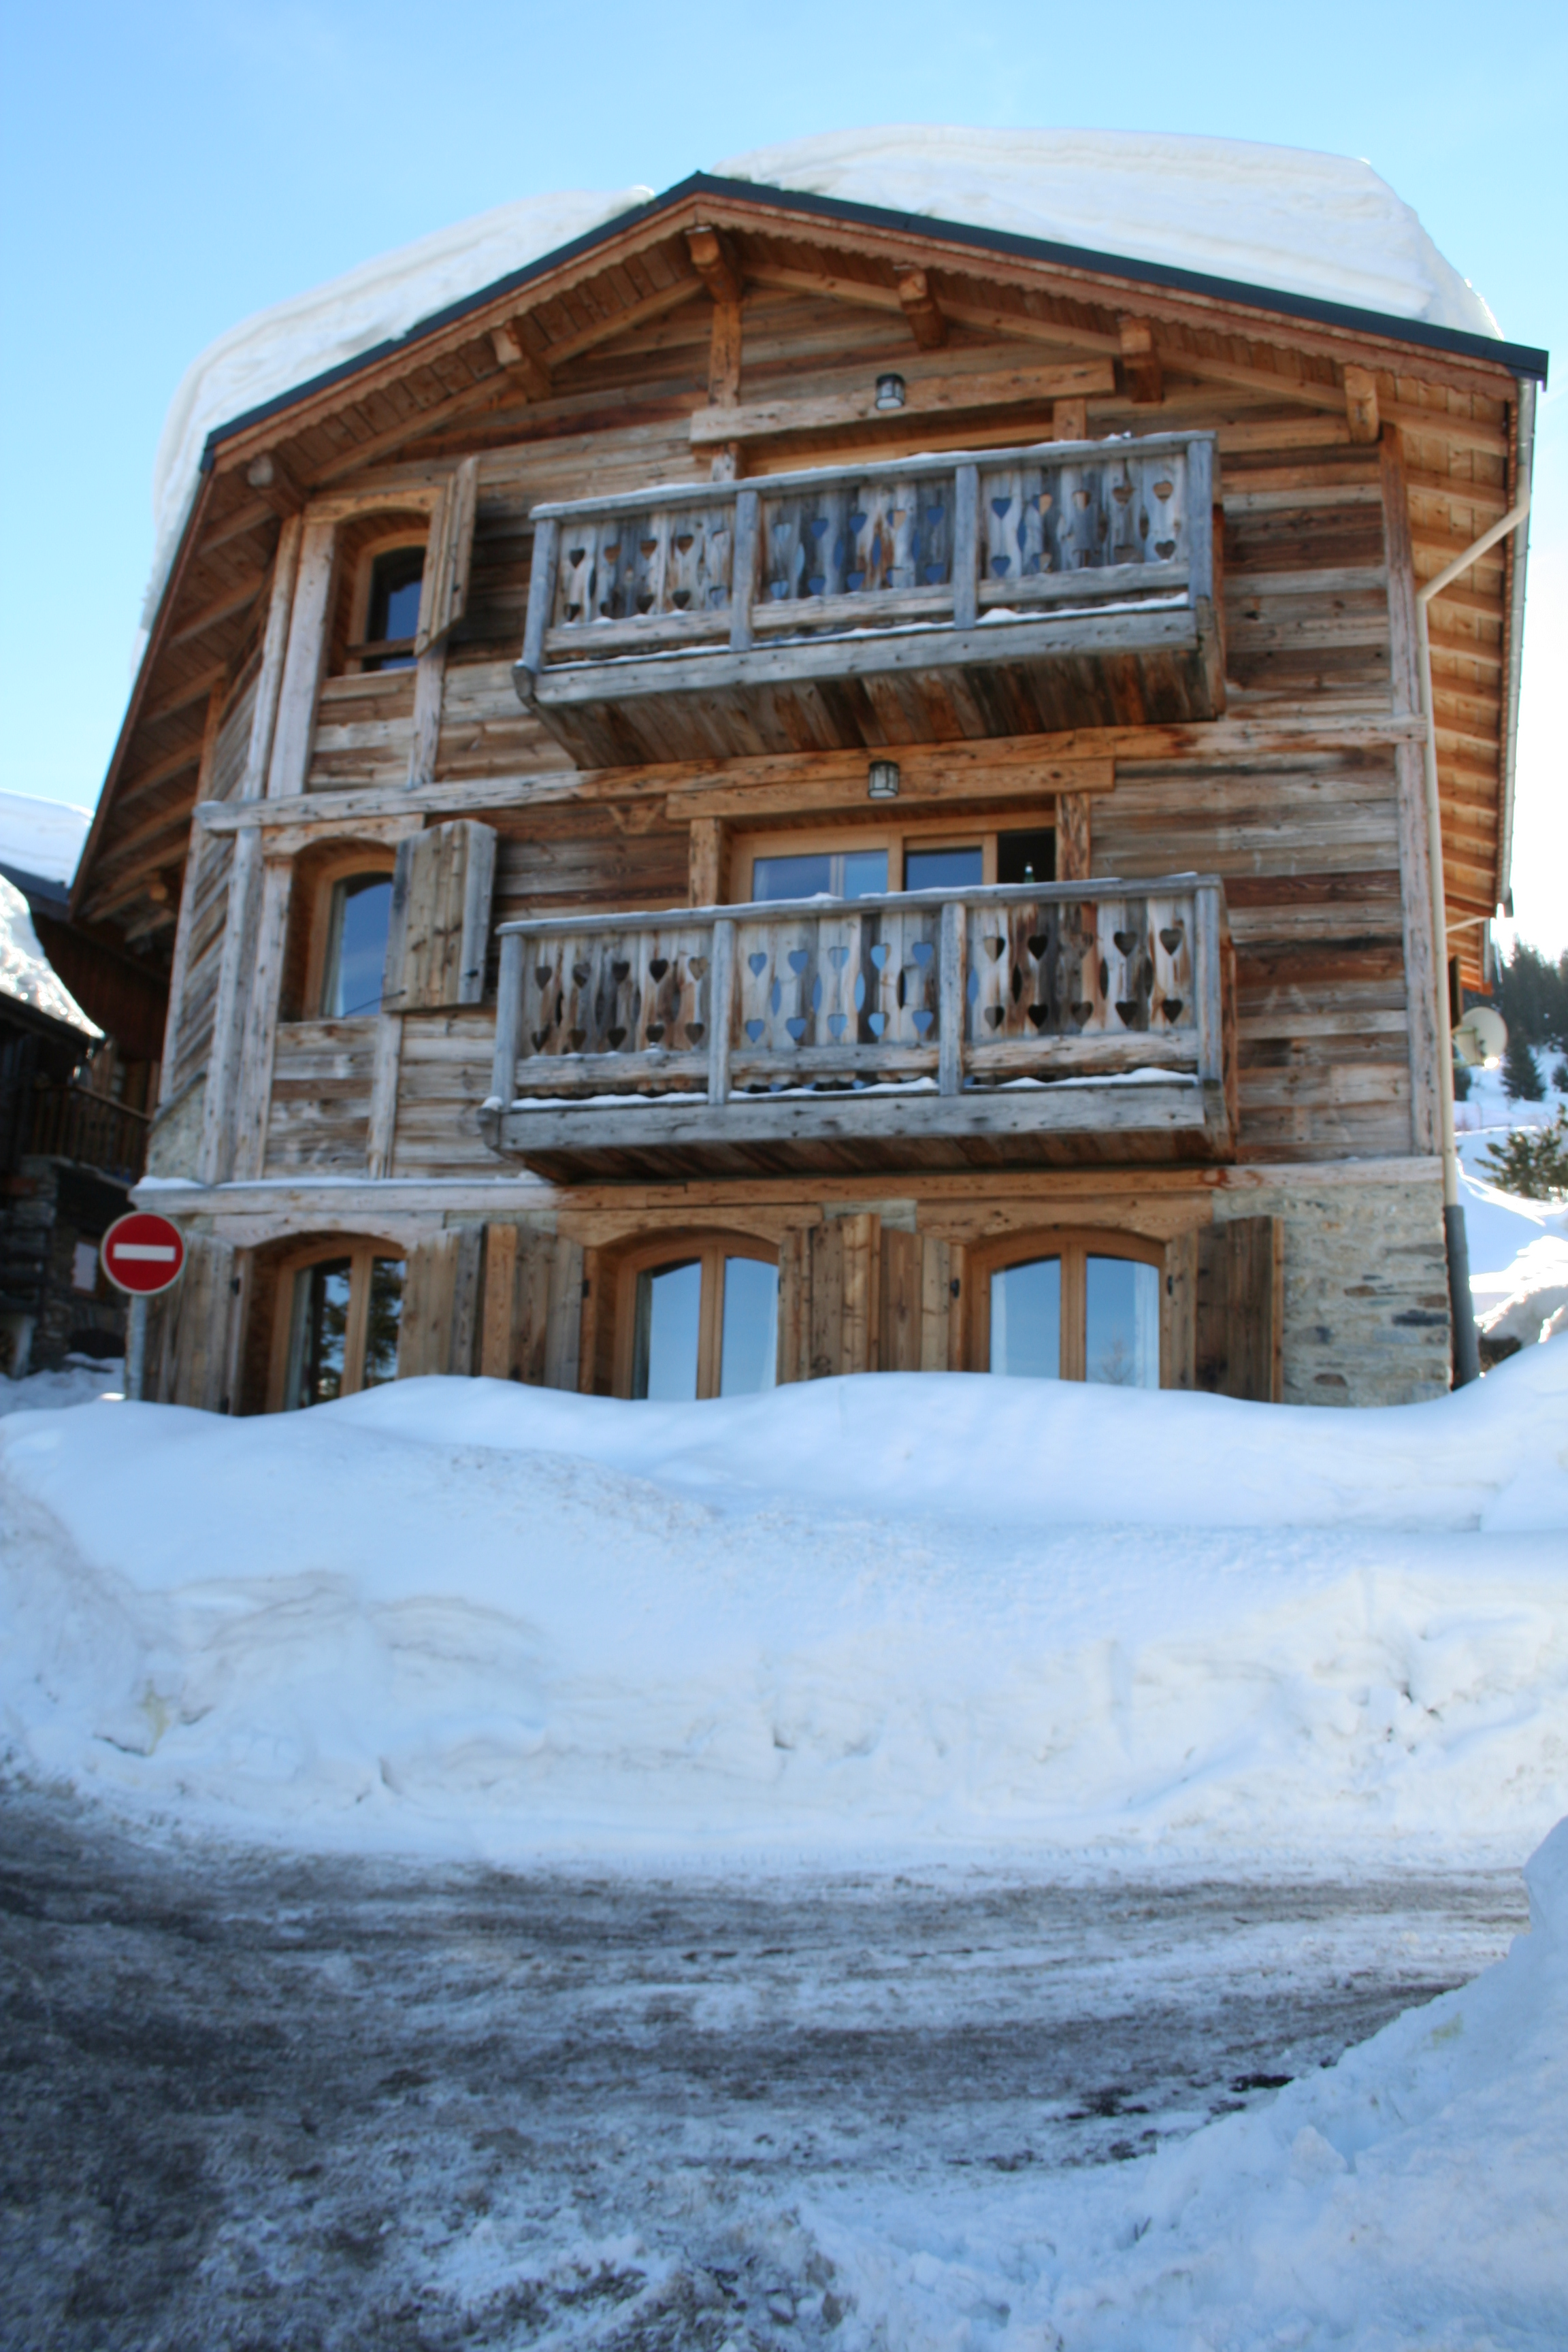 Appartement à Courchevel (Les 3 Vall�es : Courchevel - M�ribel - Les M�nuires - Val Thorens)